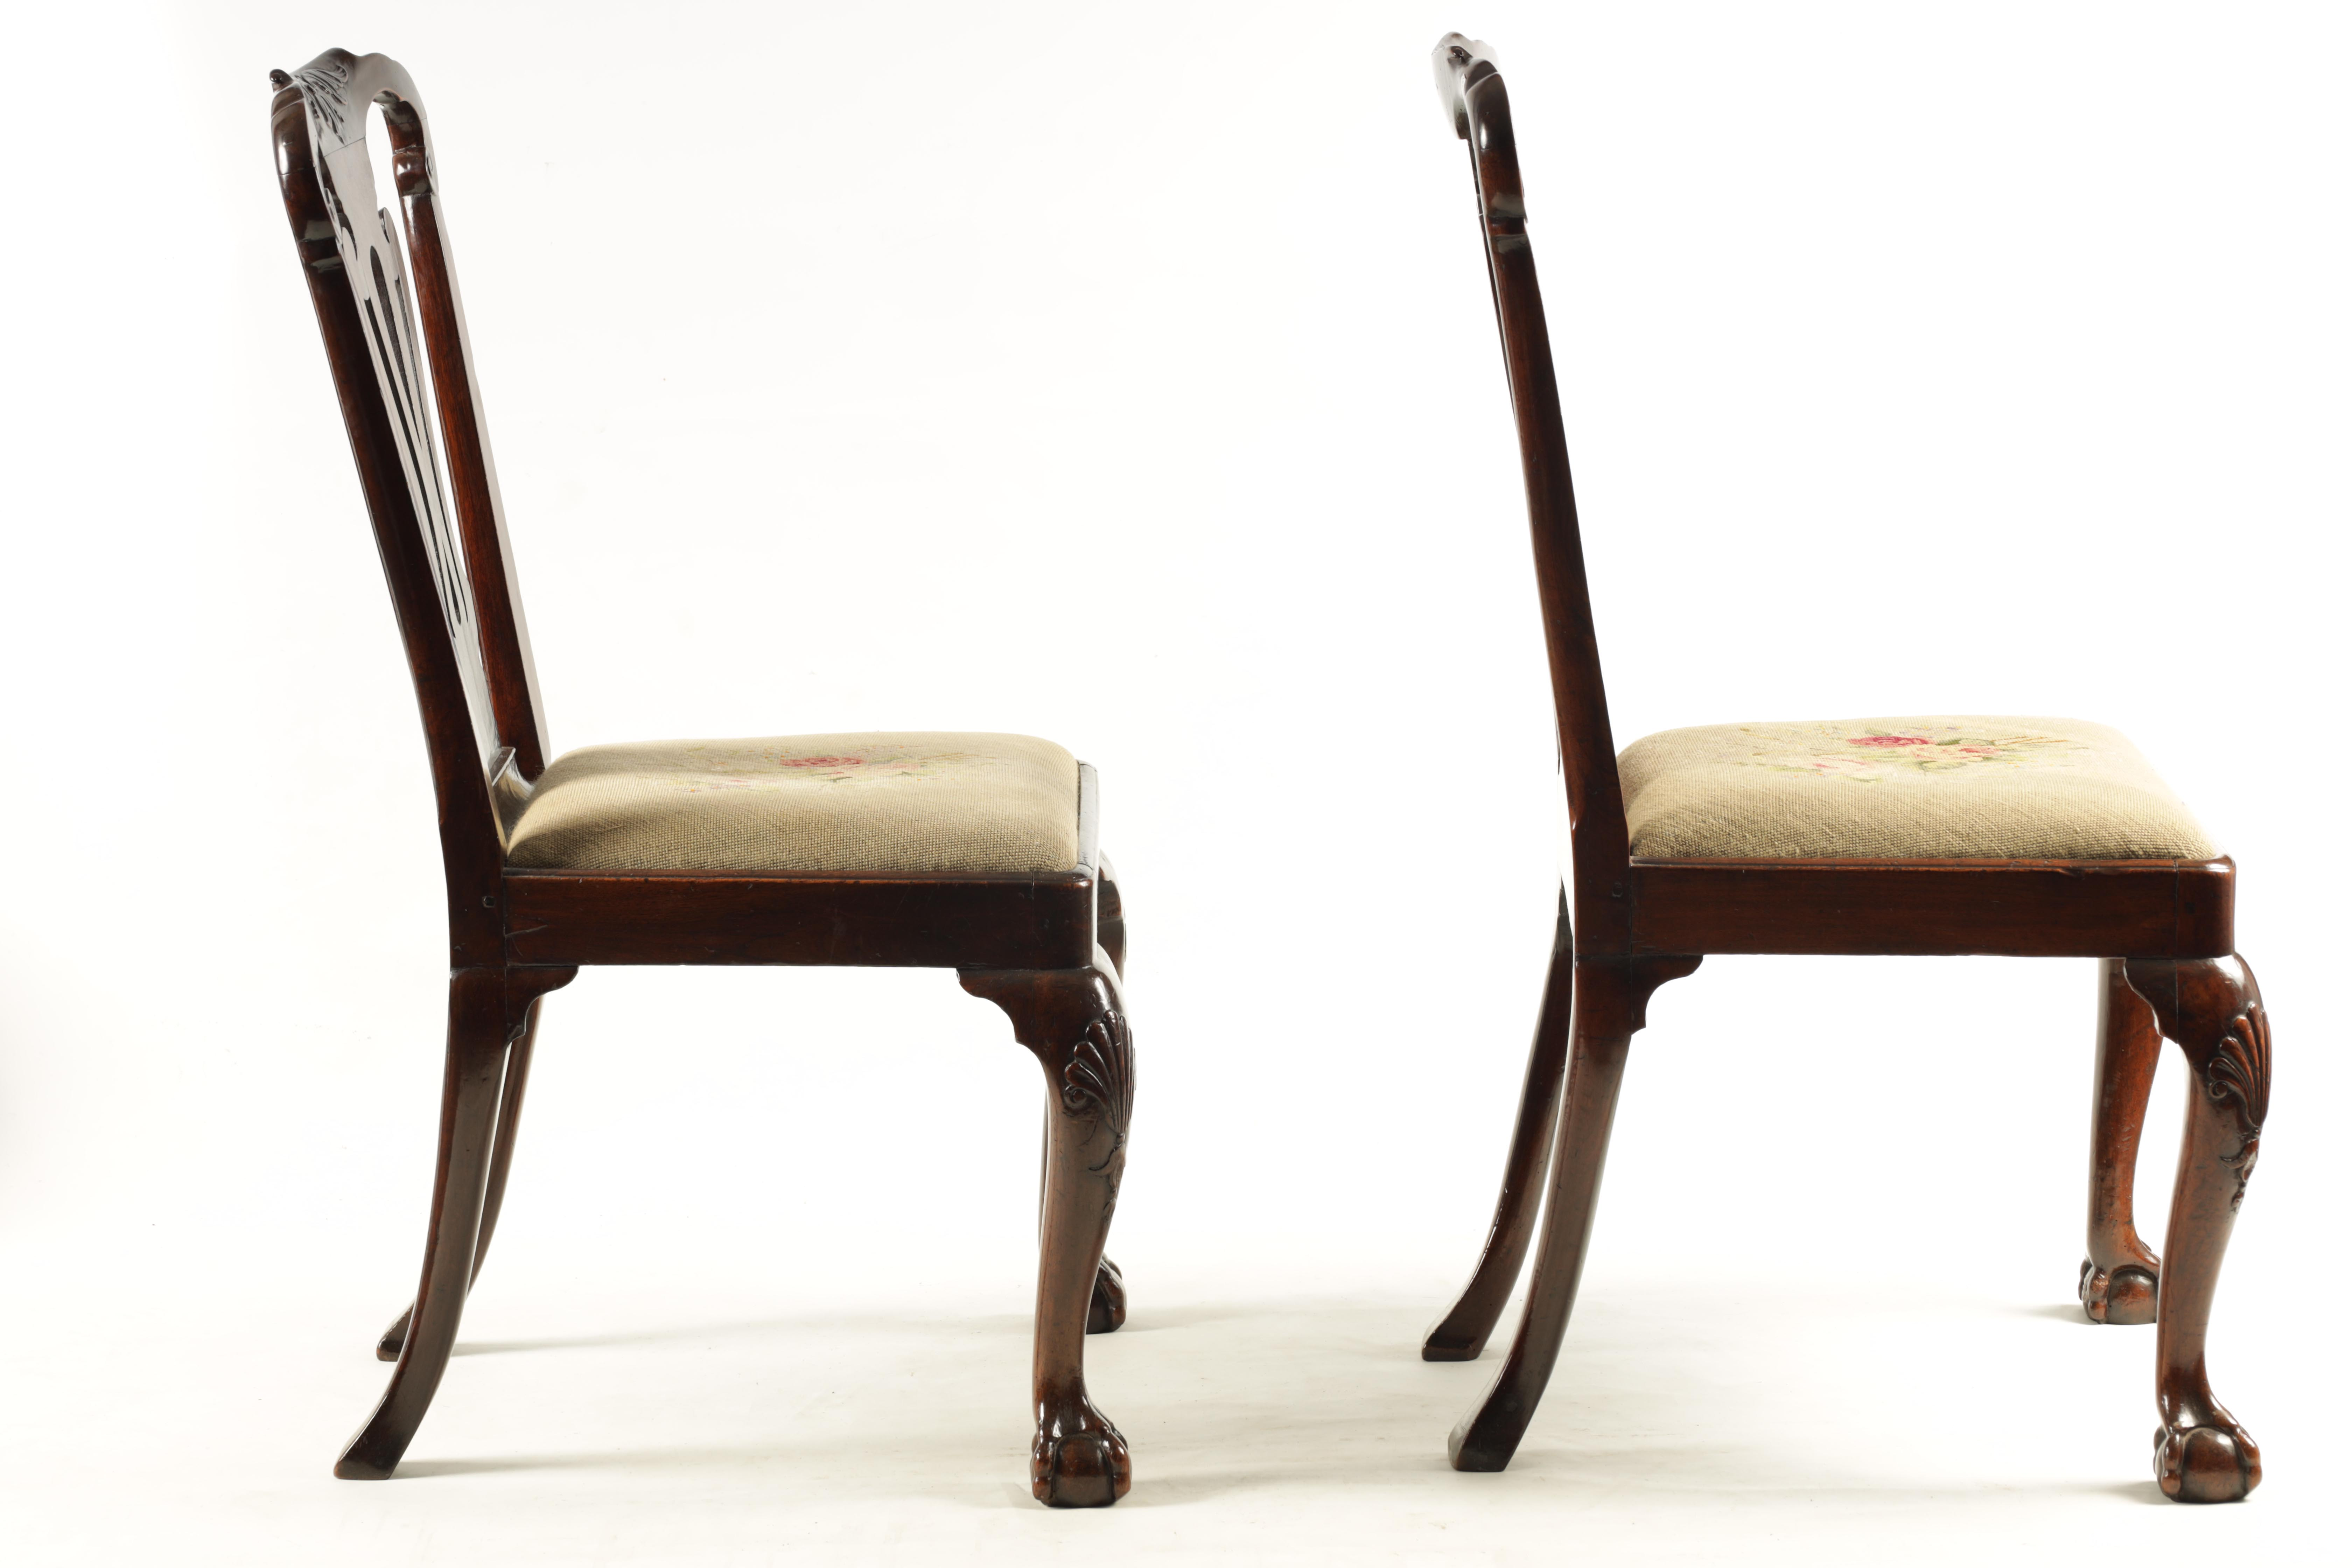 A PAIR OF GEORGE I WALNUT SIDE CHAIRS with leaf carved and scrolled top rails above vase-shaped - Image 7 of 12